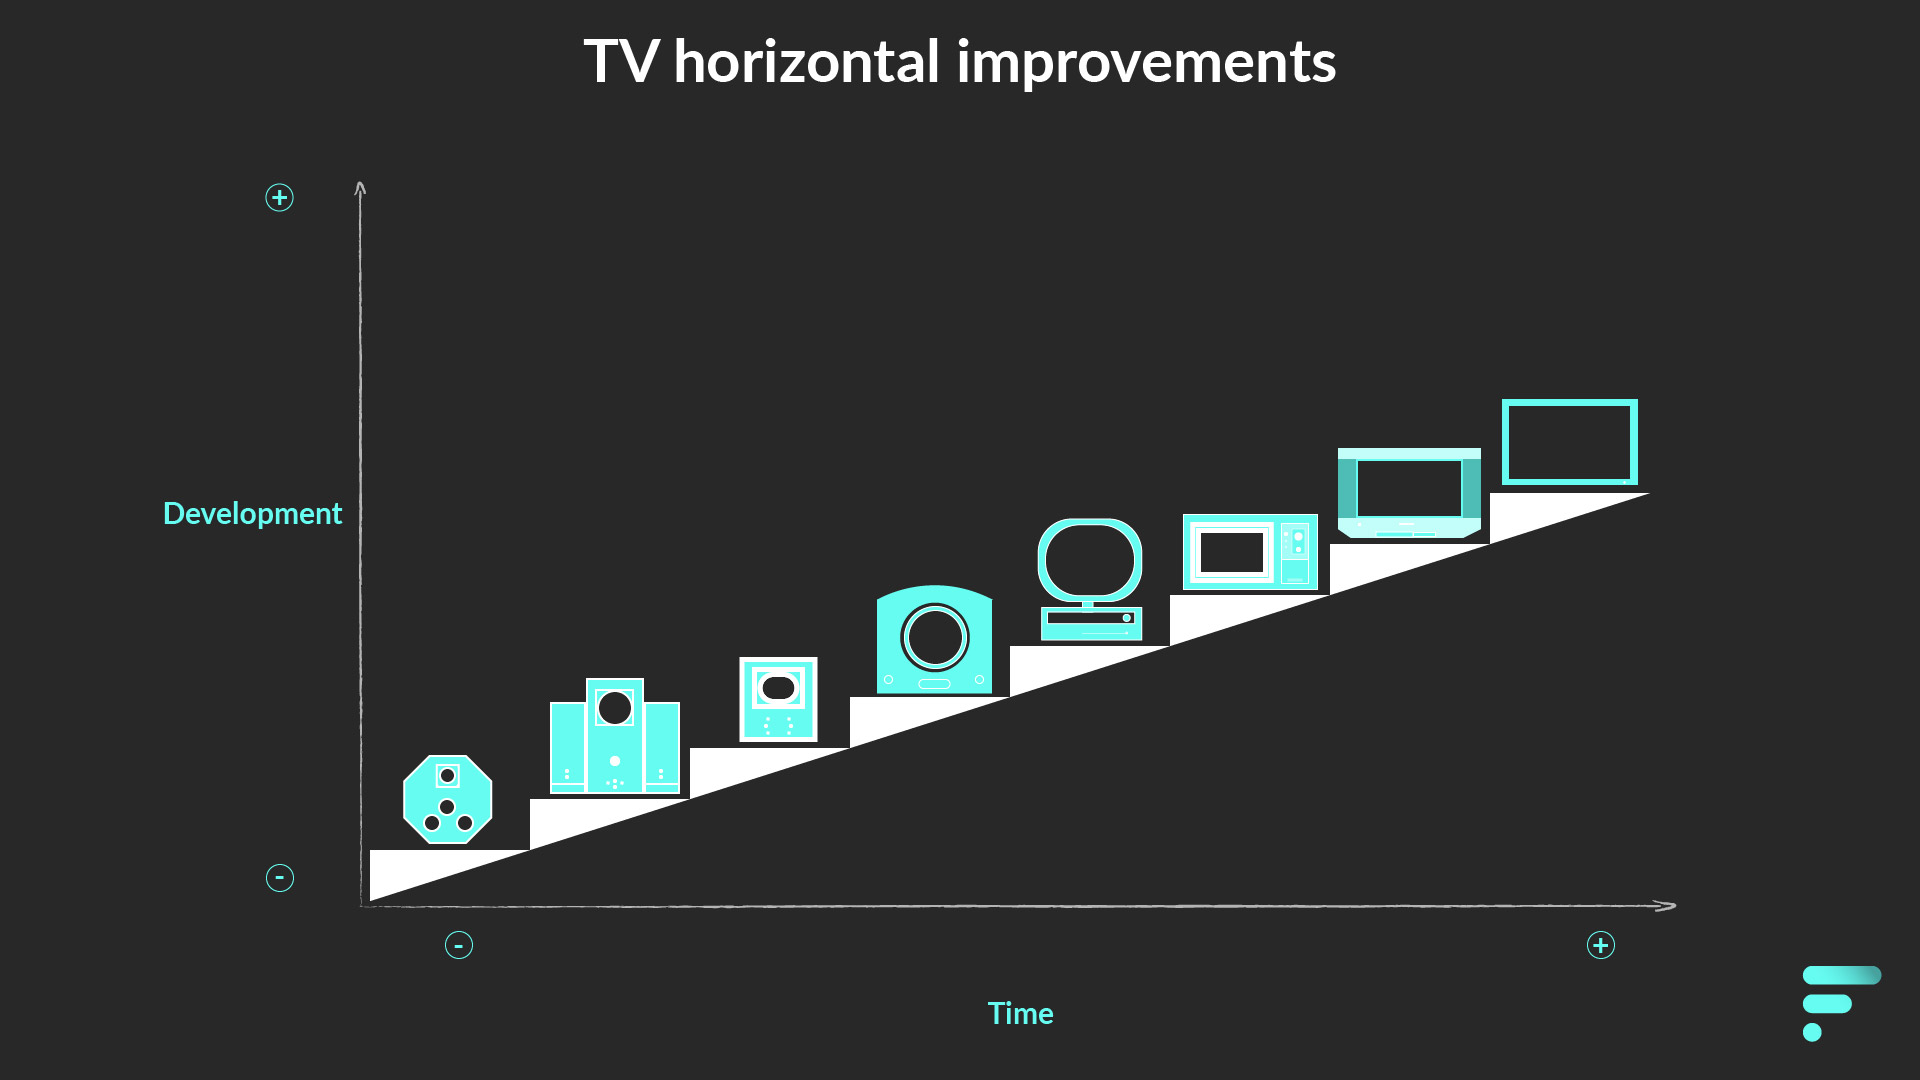 Horizontal improvements on Television